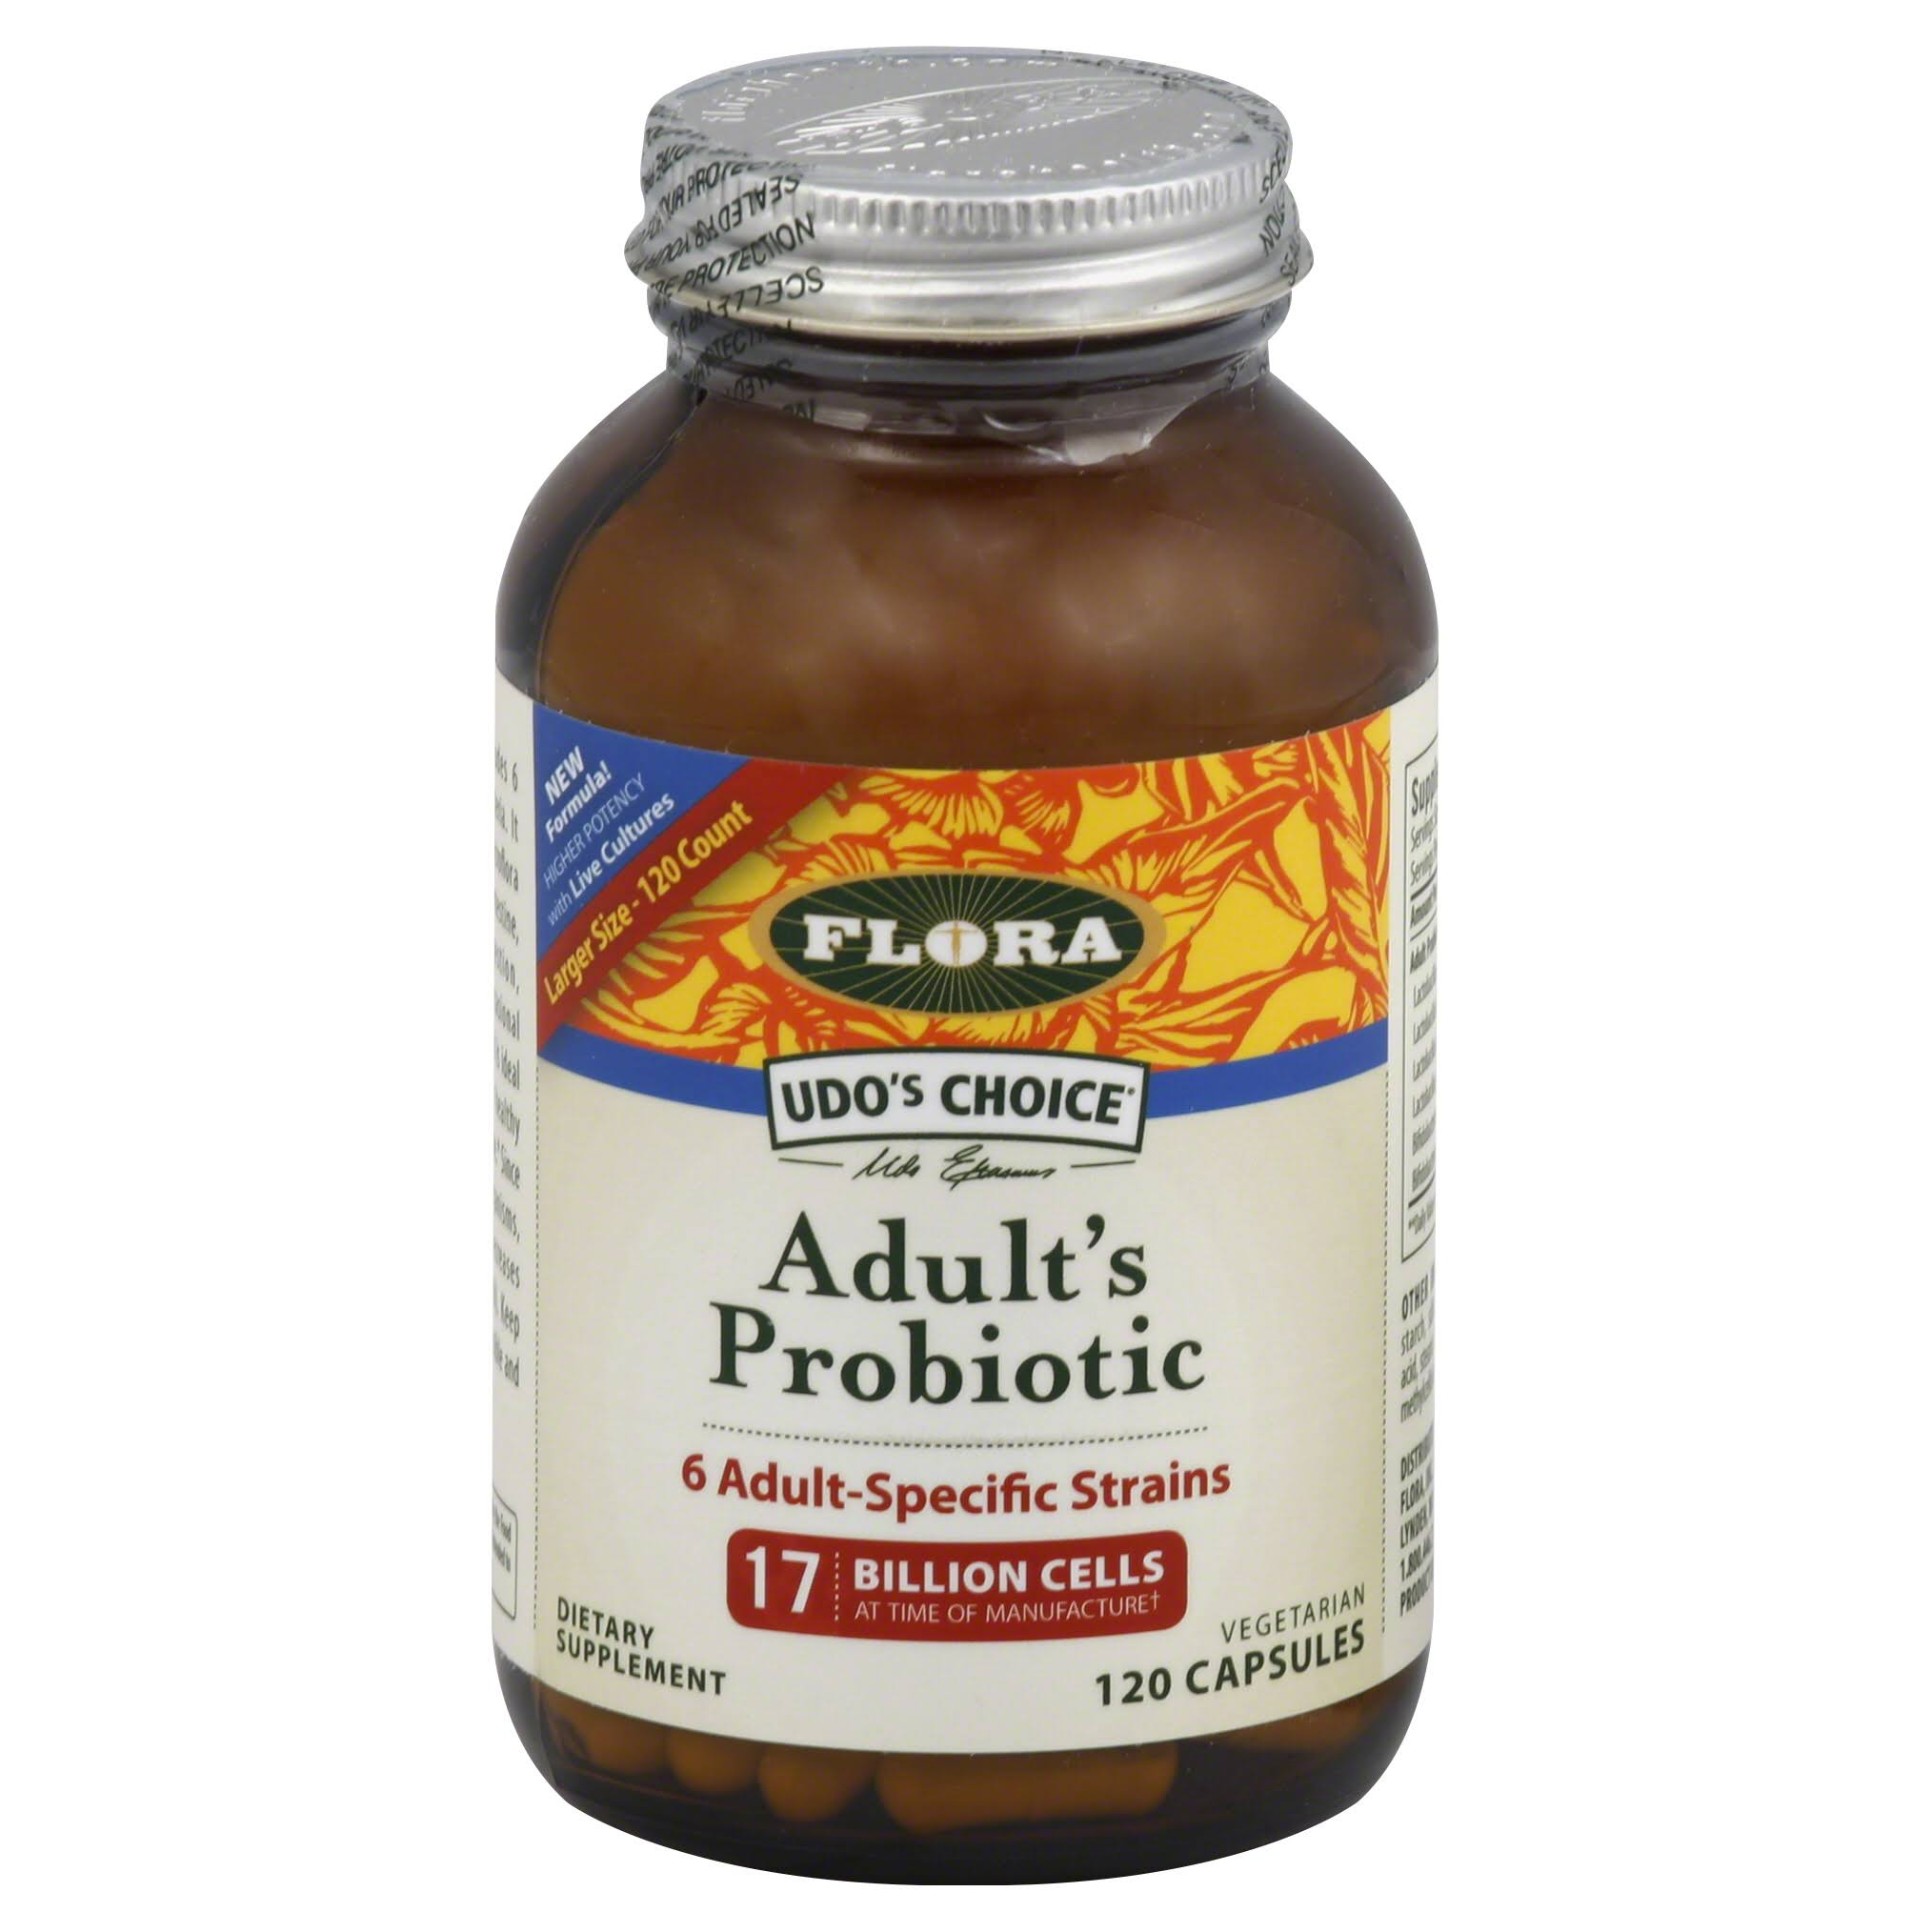 Flora Udo's Choice Adult's Probiotic Dietary Supplement - 120 Capsules